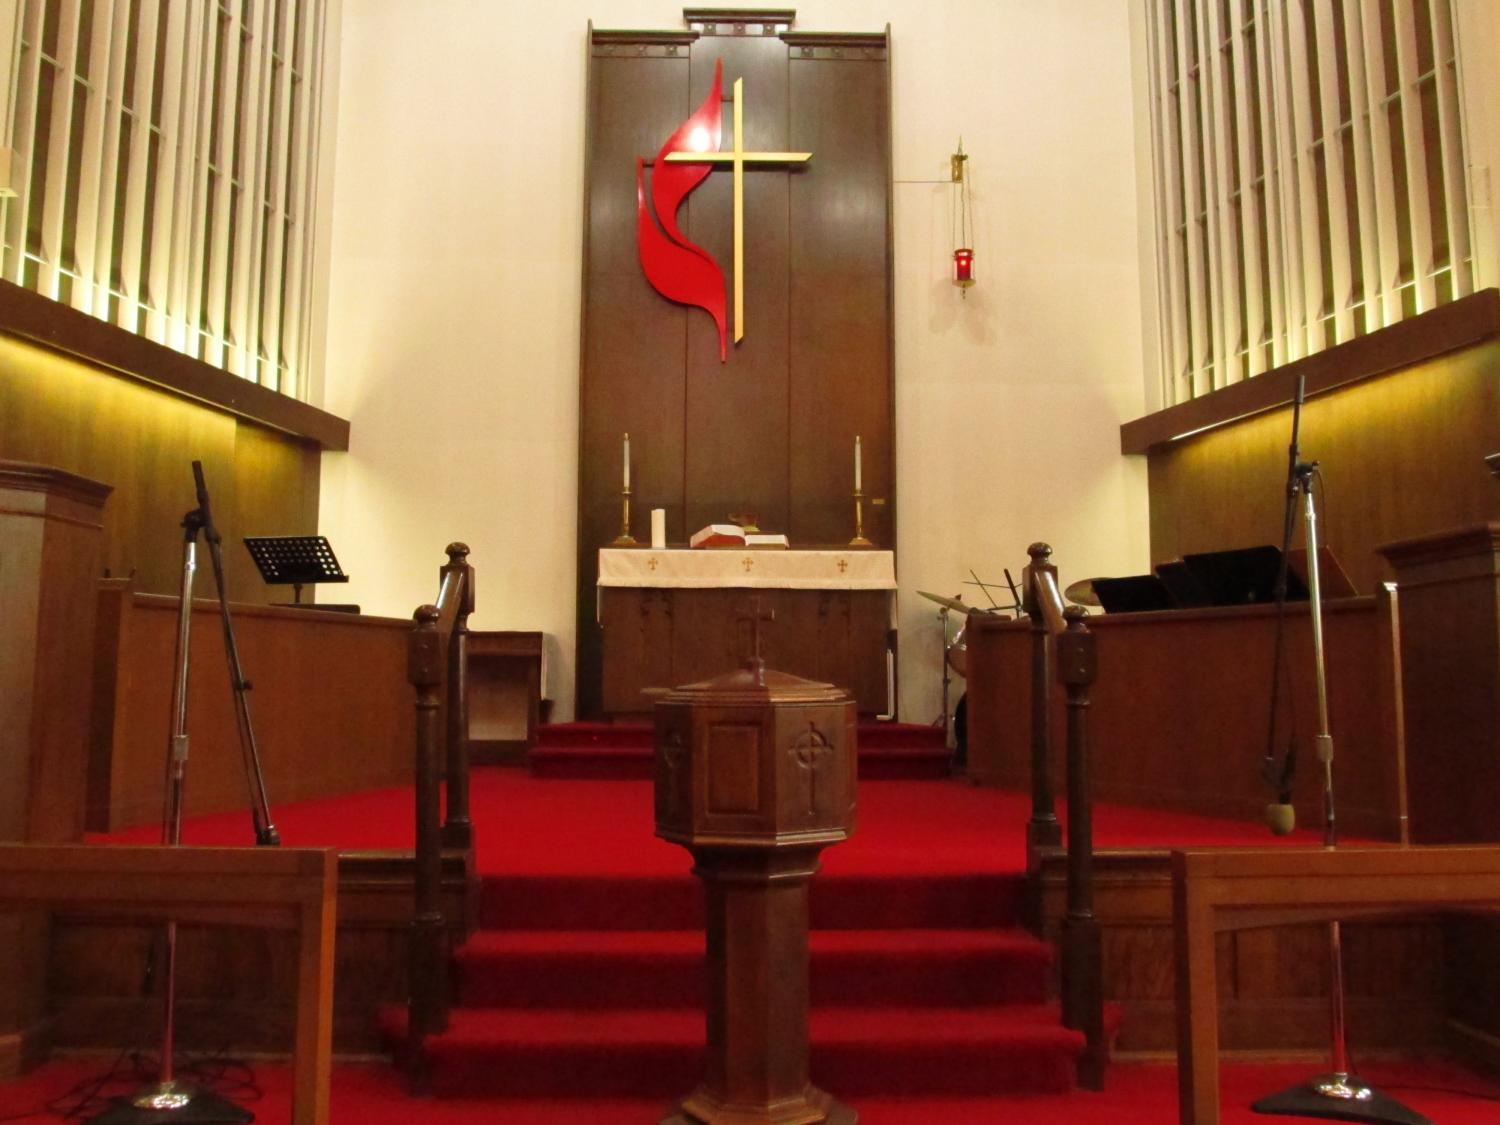 Baptism, Font, Cross, UMC, United Methodist Church, Sanctuary